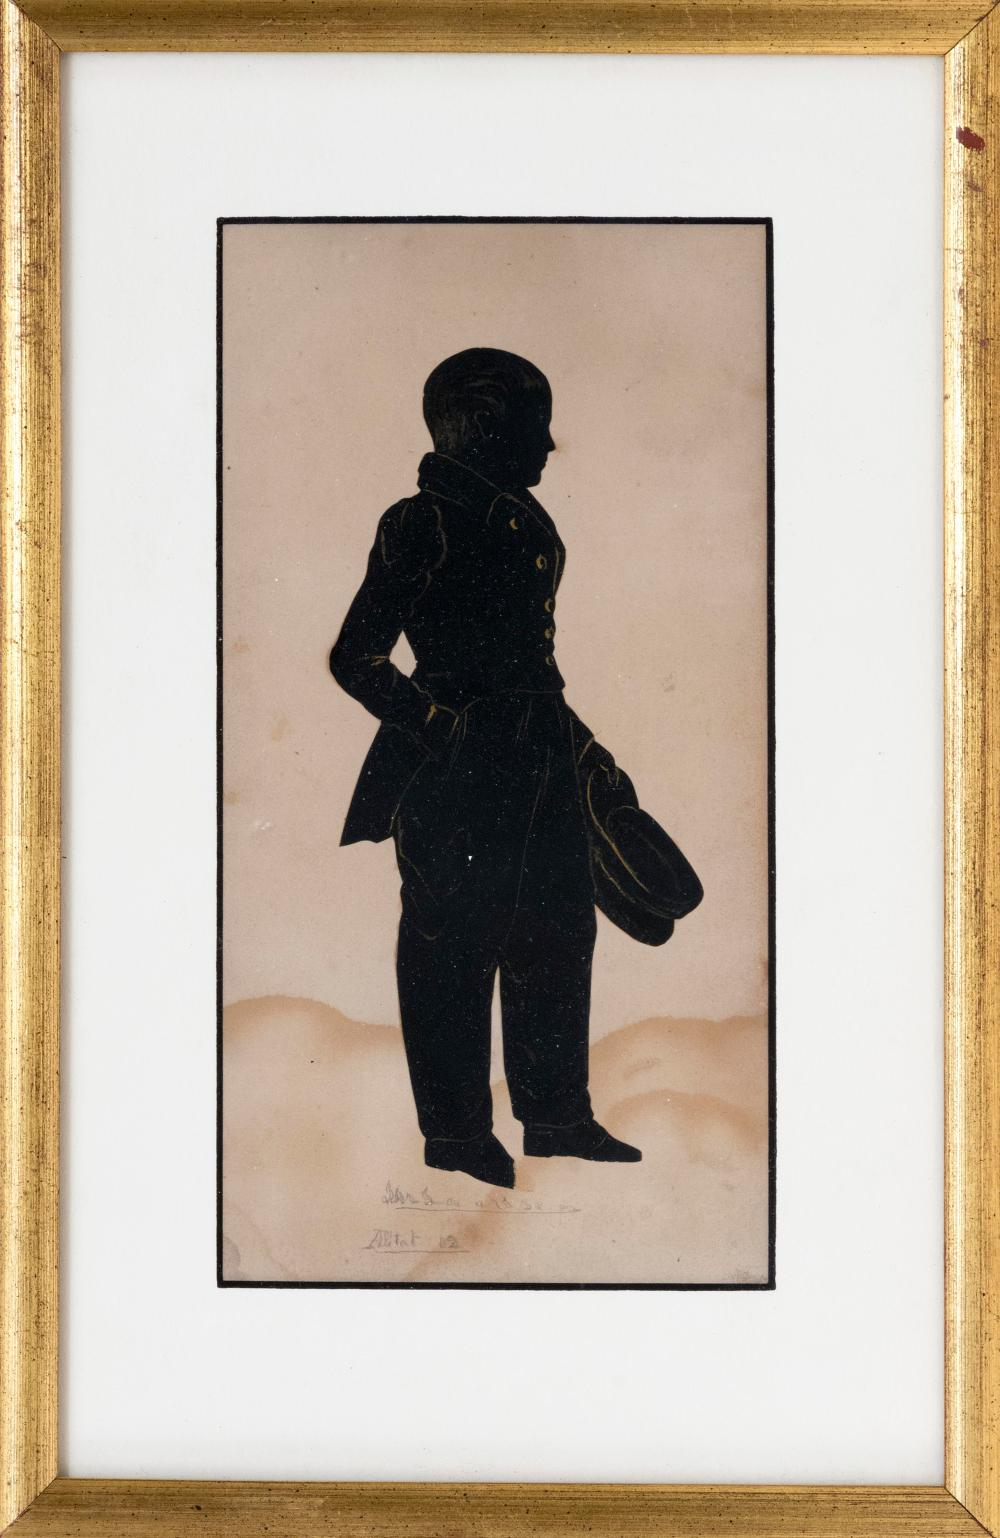 """AUGUSTE EDOUART, Louisiana/France, 1789-1861, Cut paper silhouette of a young boy holding a hat., 9"""" x 4.5"""" sight. Framed 13"""" x 8.5""""."""